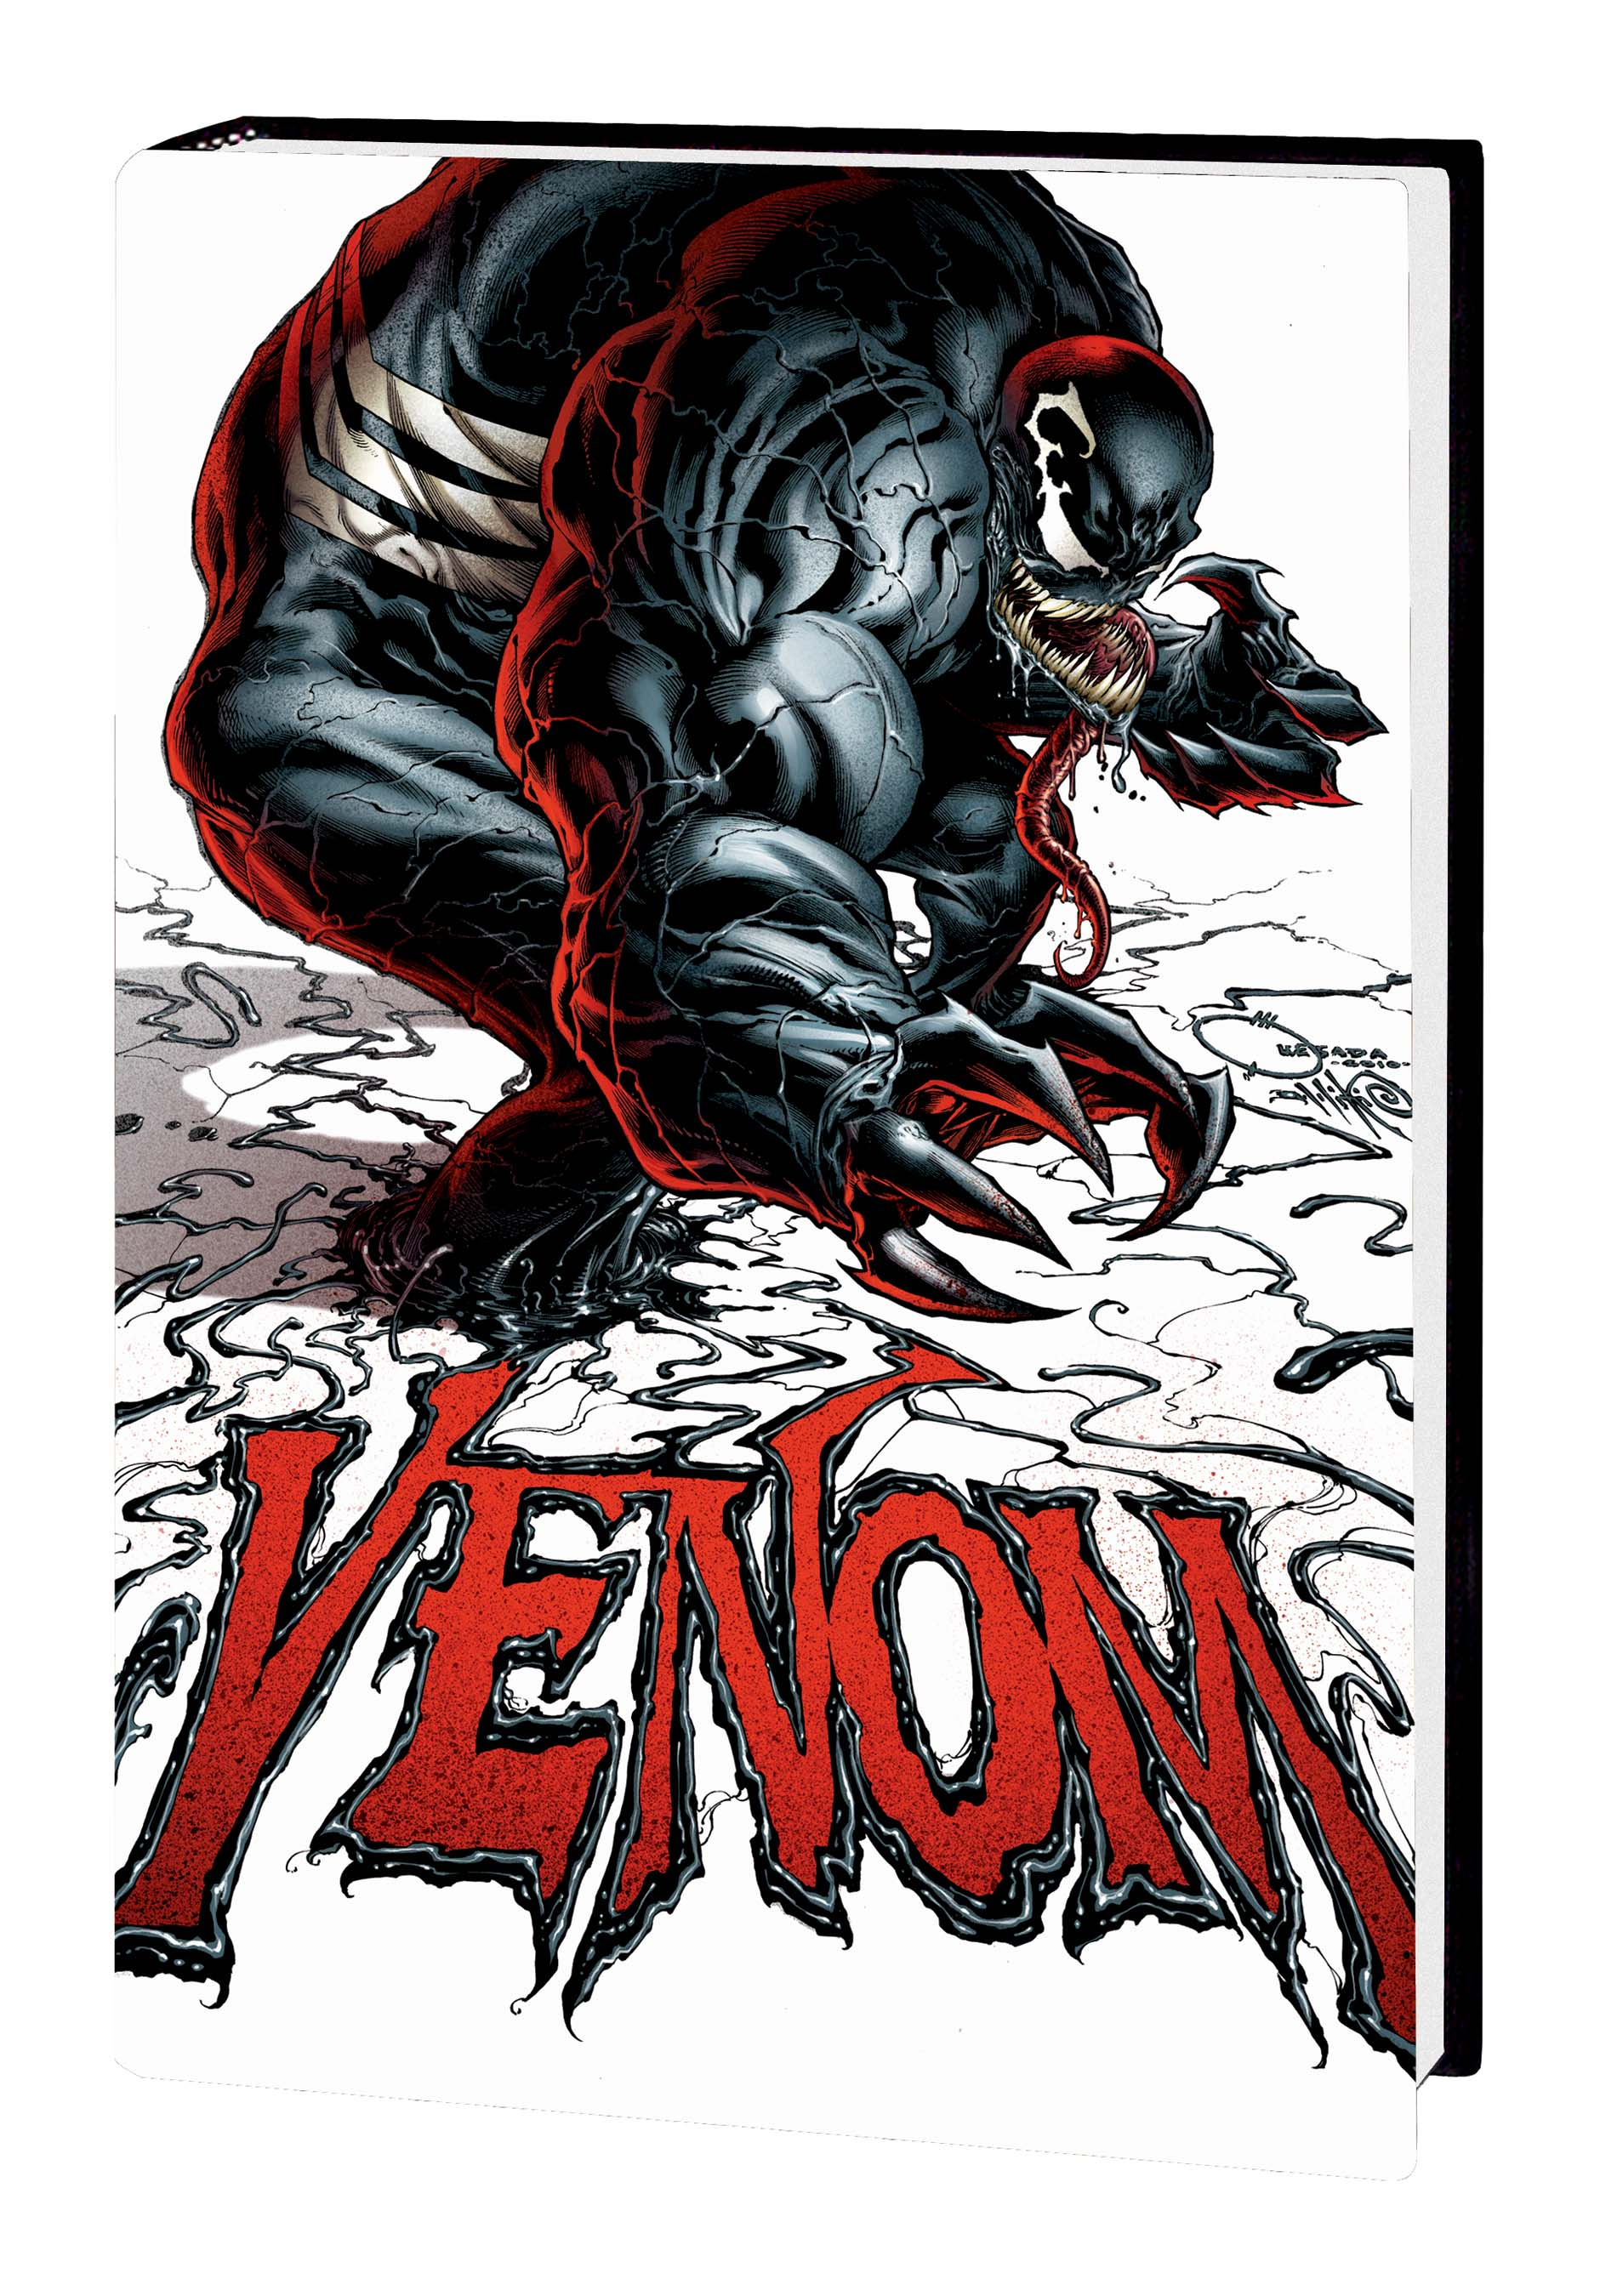 VENOM BY RICK REMENDER VOL. 1 TPB (Trade Paperback)